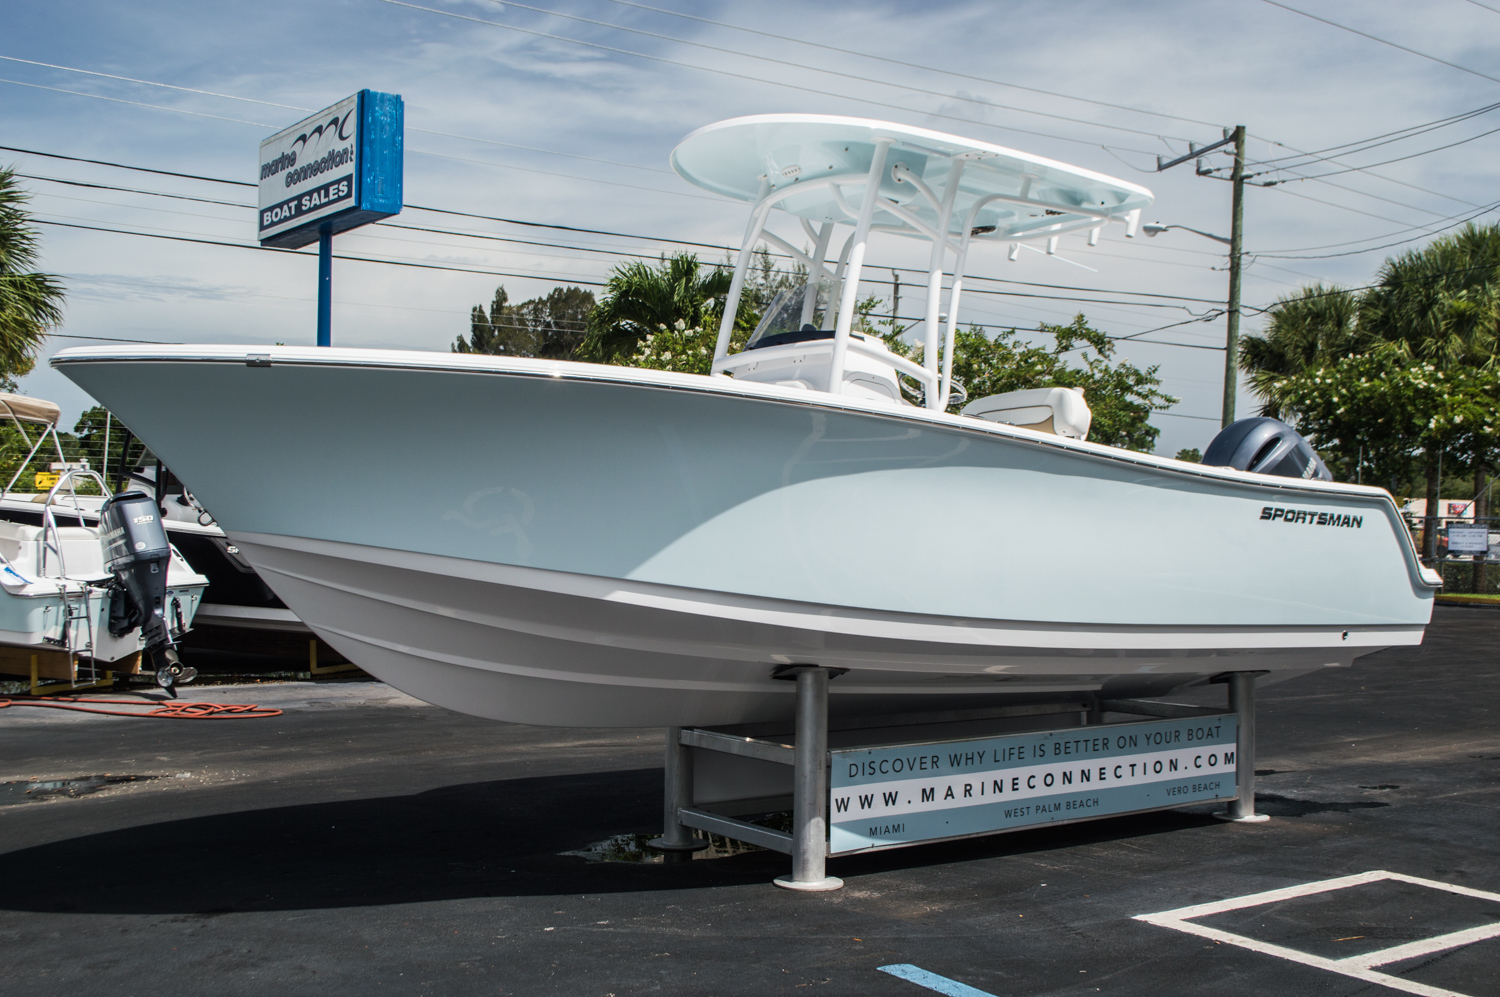 Thumbnail 3 for New 2016 Sportsman Open 232 Center Console boat for sale in West Palm Beach, FL